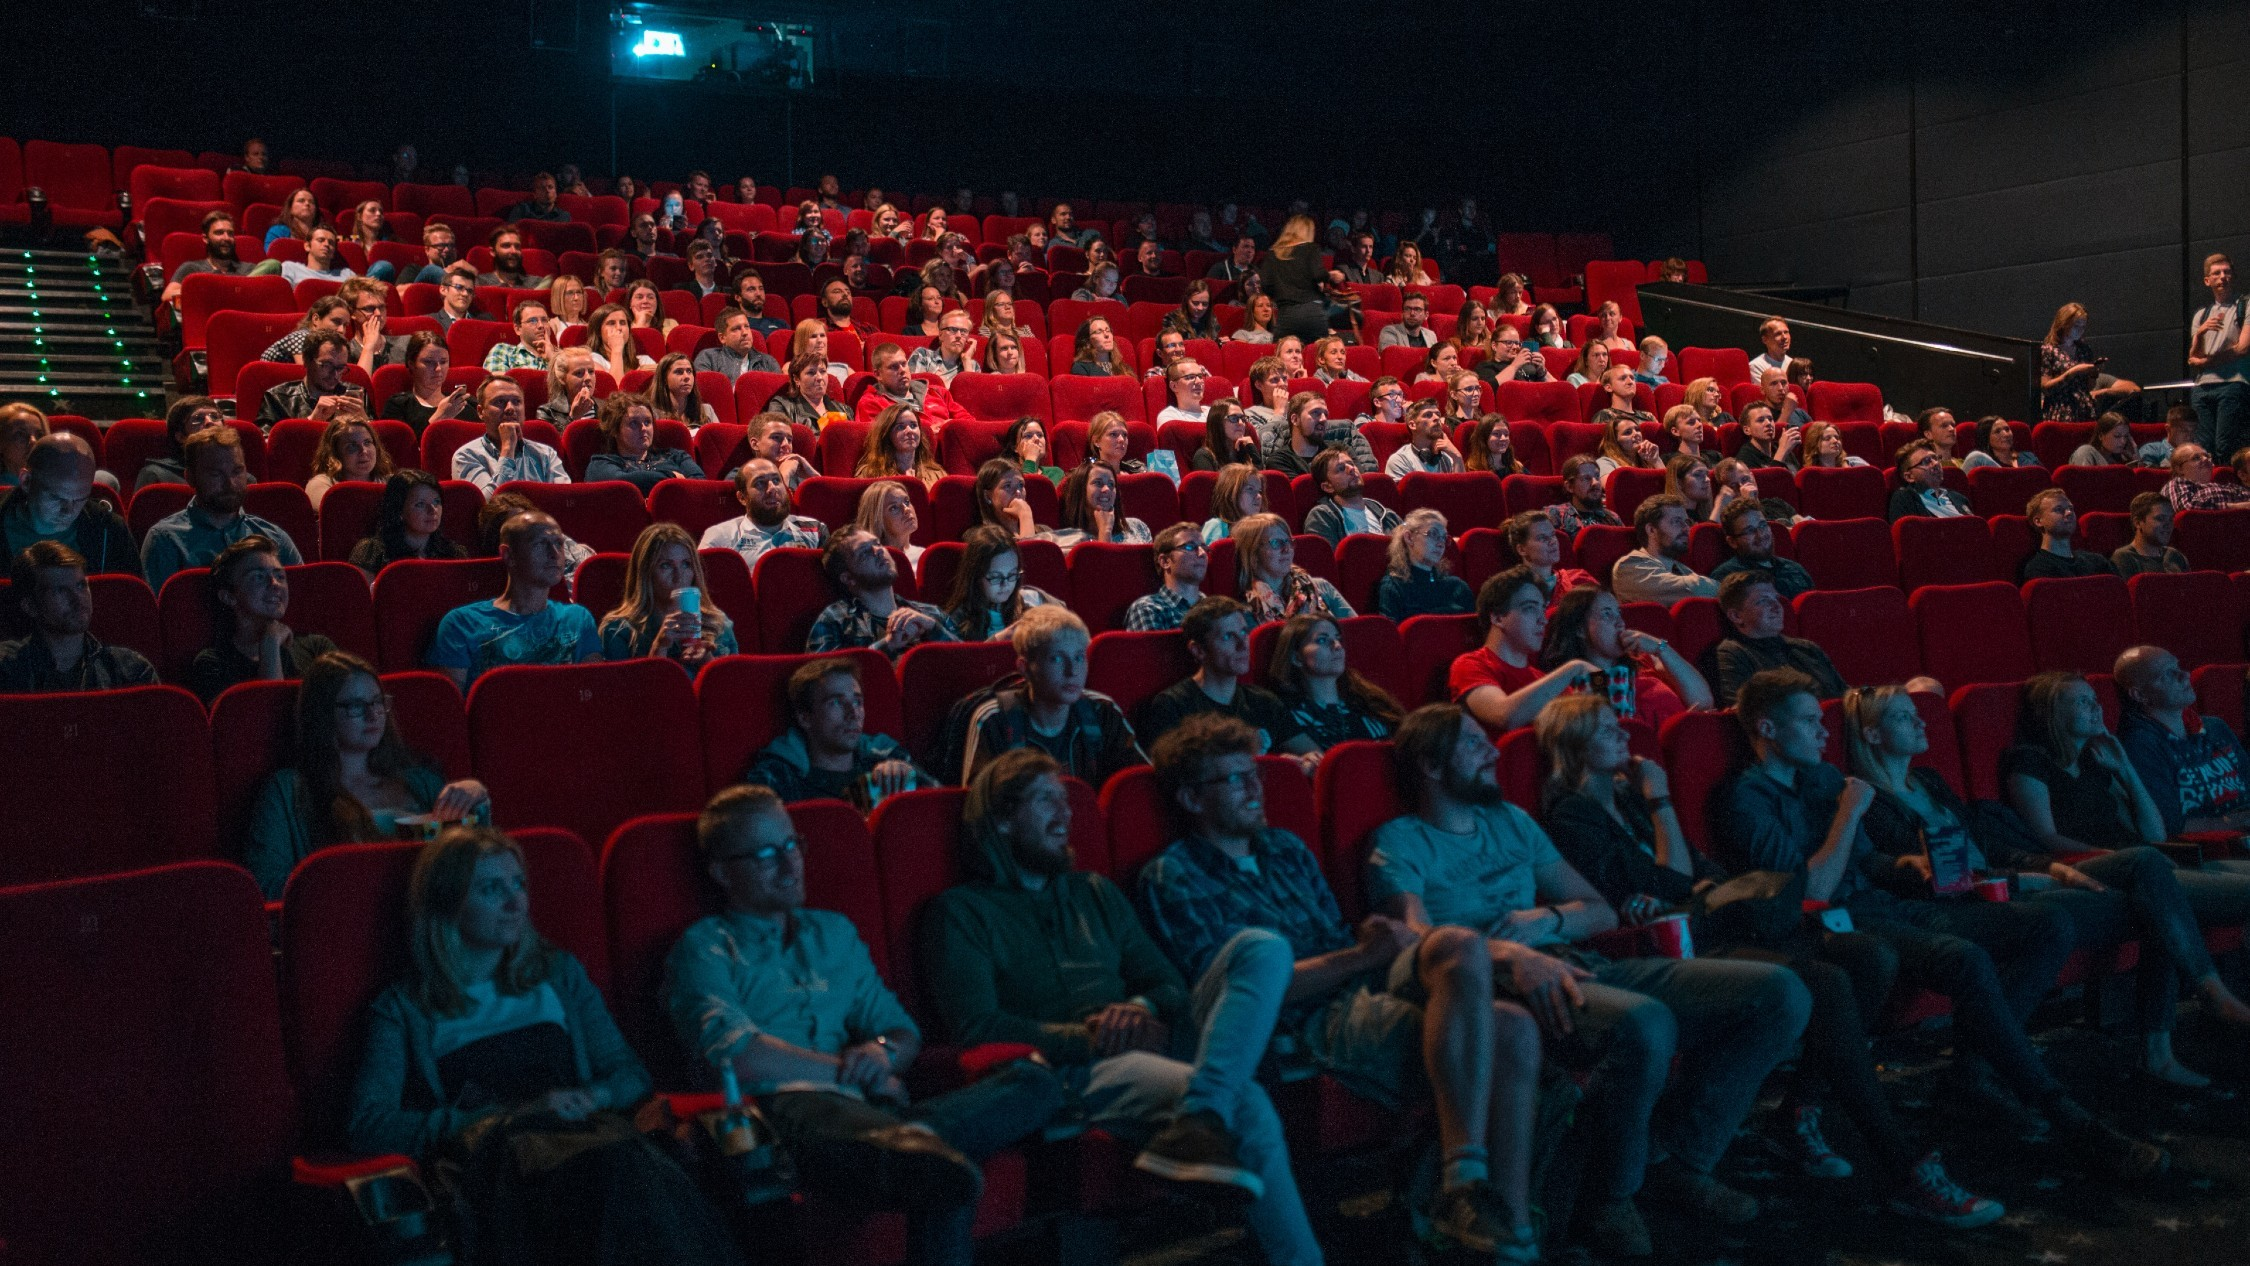 People in a movie theatre